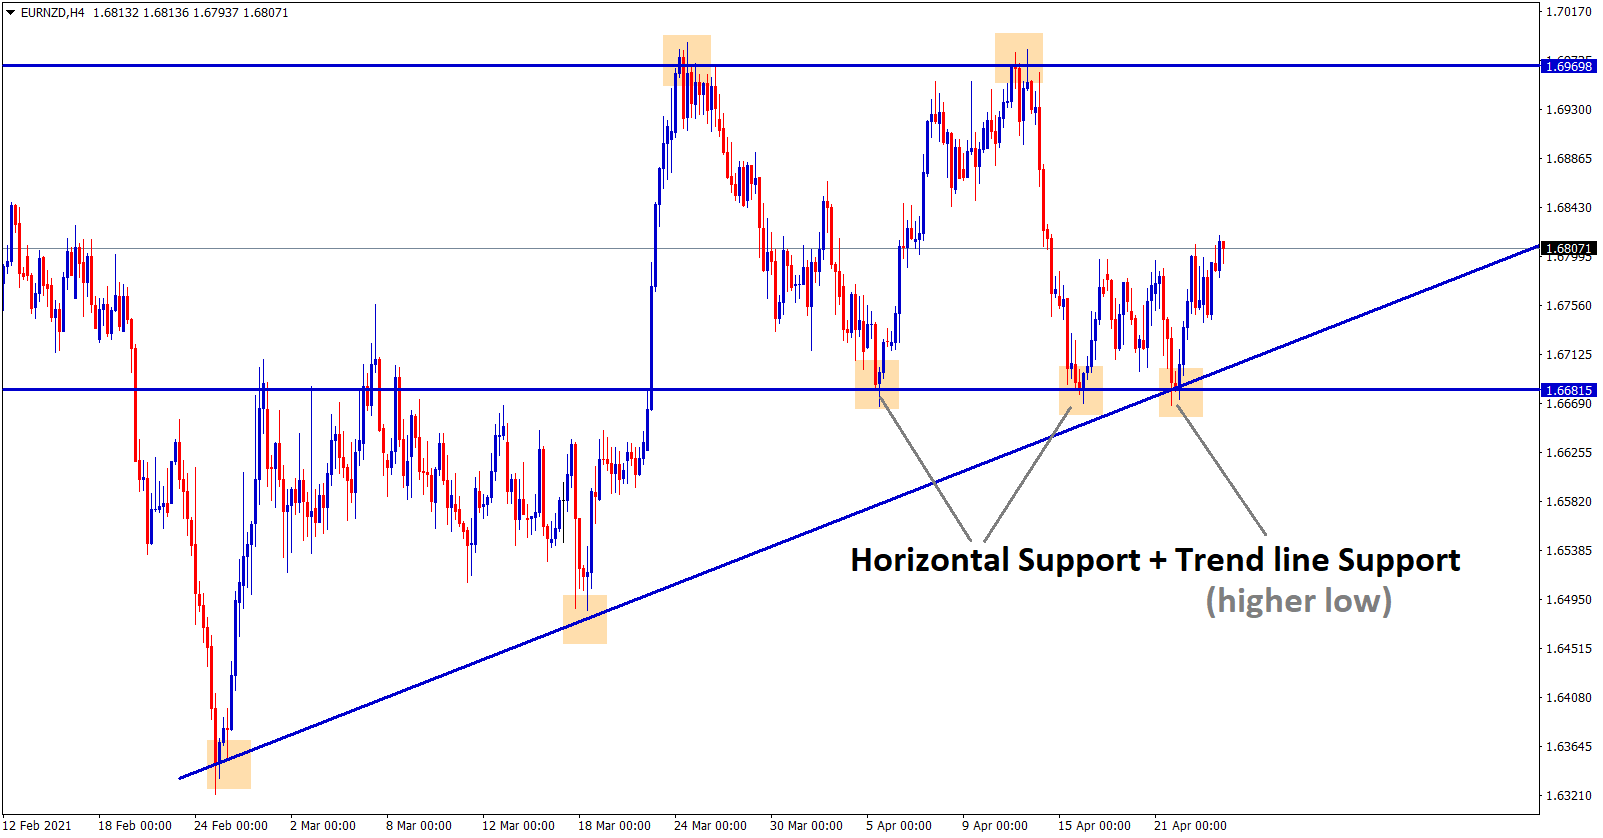 EURNZD touches both horizontal and trend line support